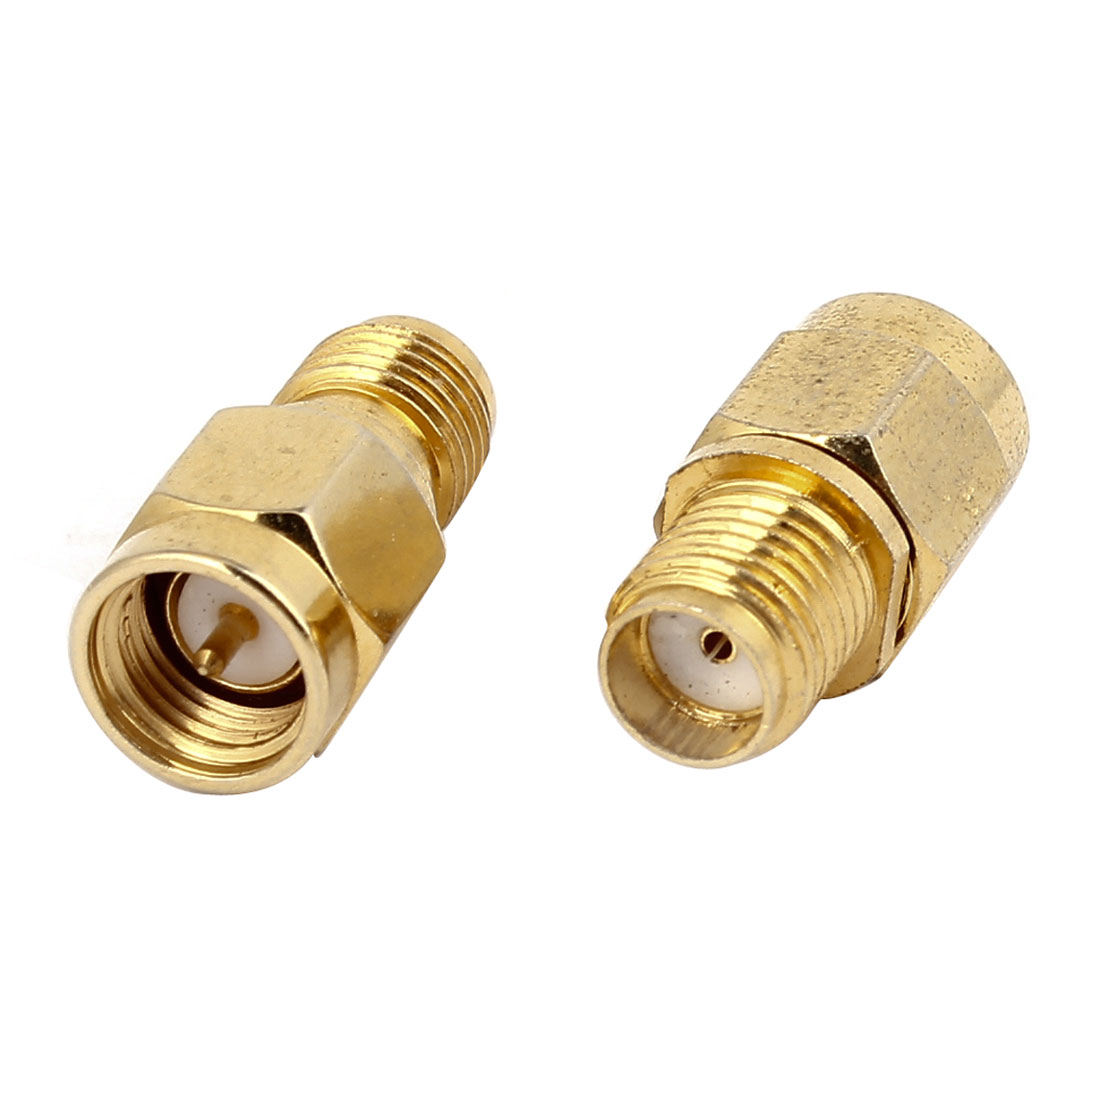 2pcs Gold Tone Metal SMA Female to SMA Male F/M RF Coaxial Coax Adapter Connector